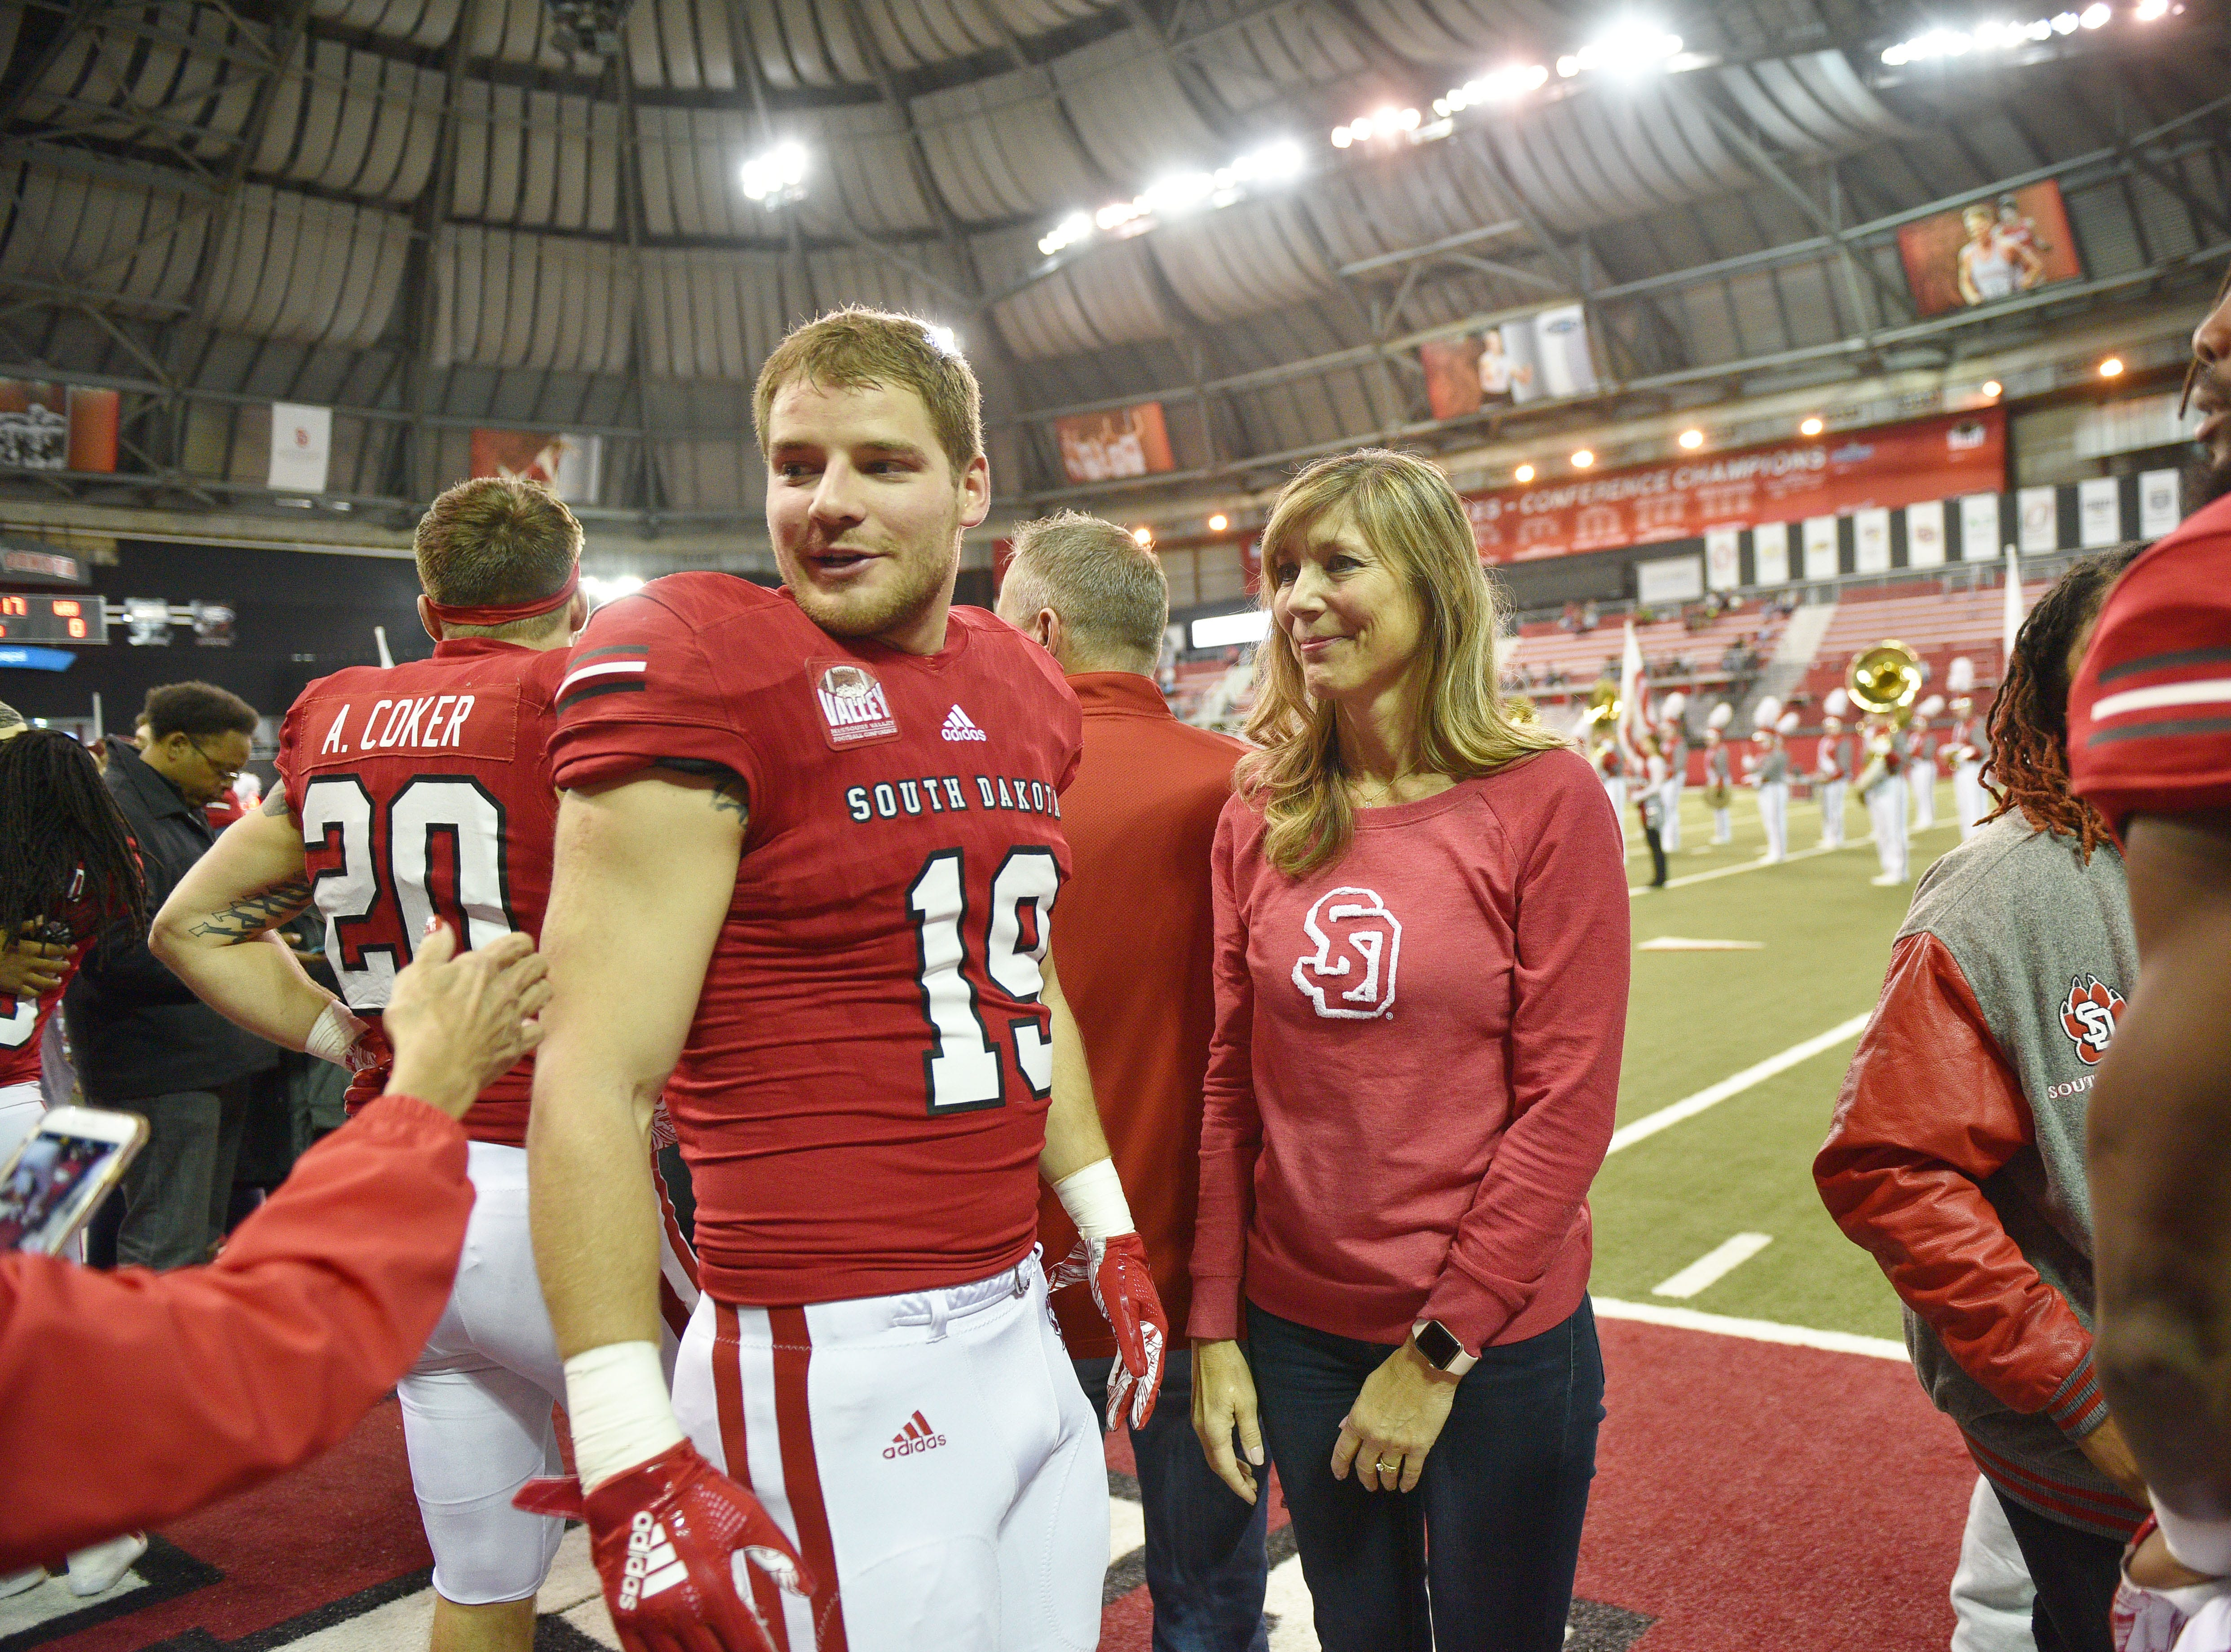 USD's Clay Fisher celebrates senior night before going on the field before the game against Western Illinois Saturday, Nov. 10, at the DakotaDome in Vermillion.